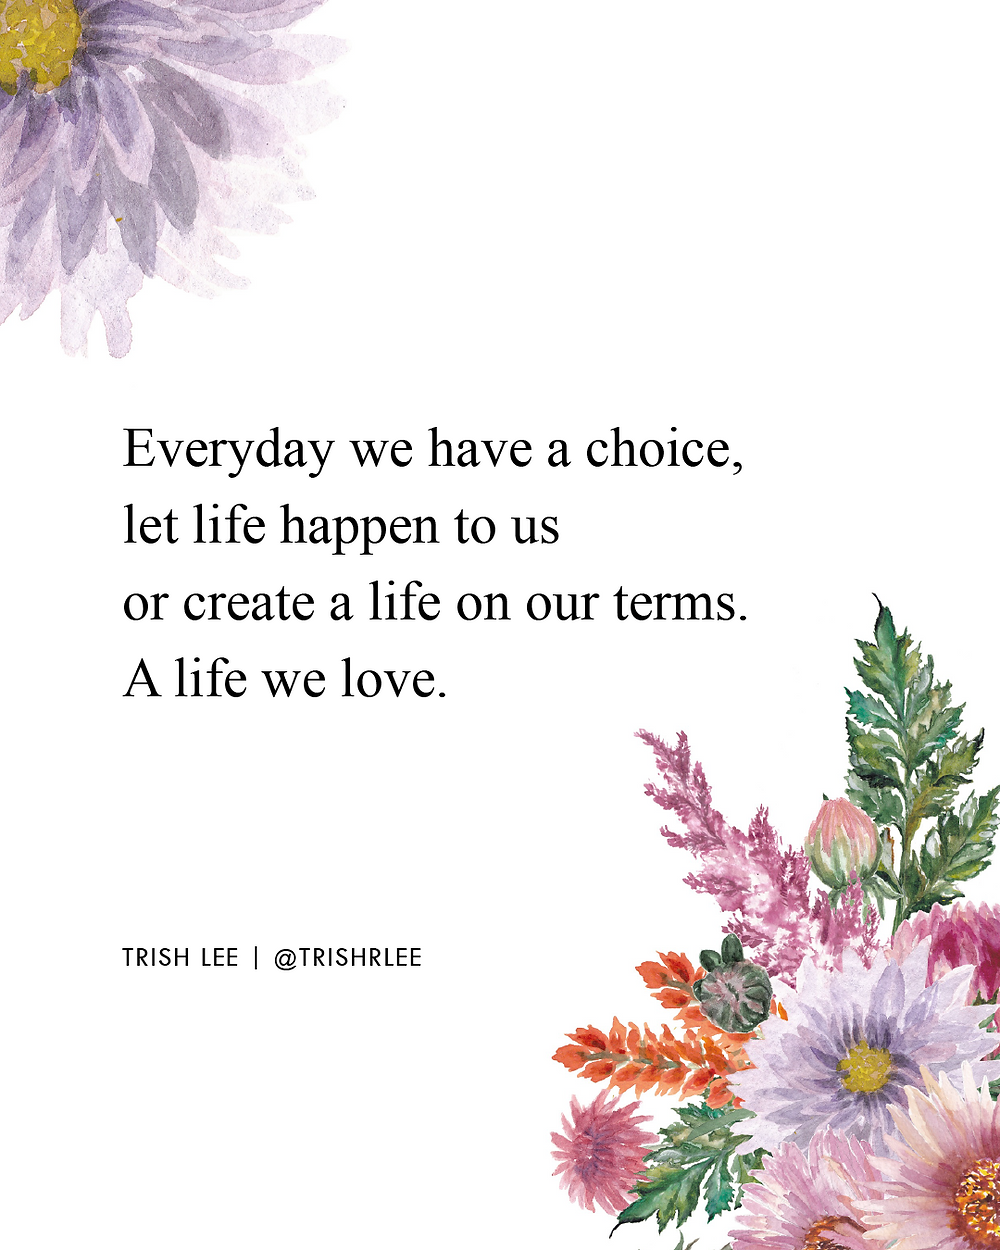 Everyday we have a choice - let life happen to us or create a life we love